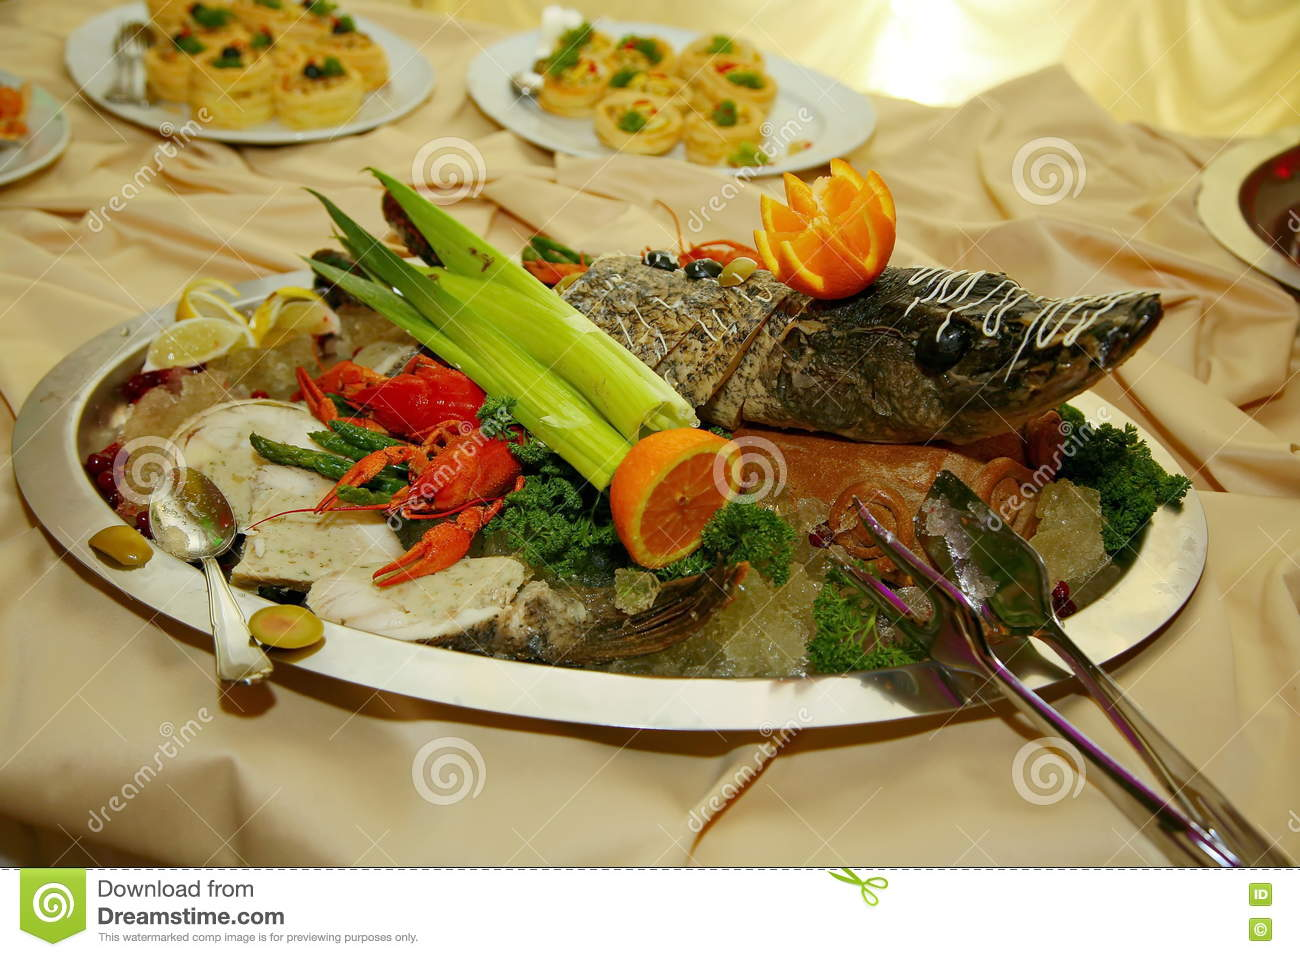 Artistically decorated with Gefilte fish sterlet baked entirely is a delicacy from the chef - a dish of venison.